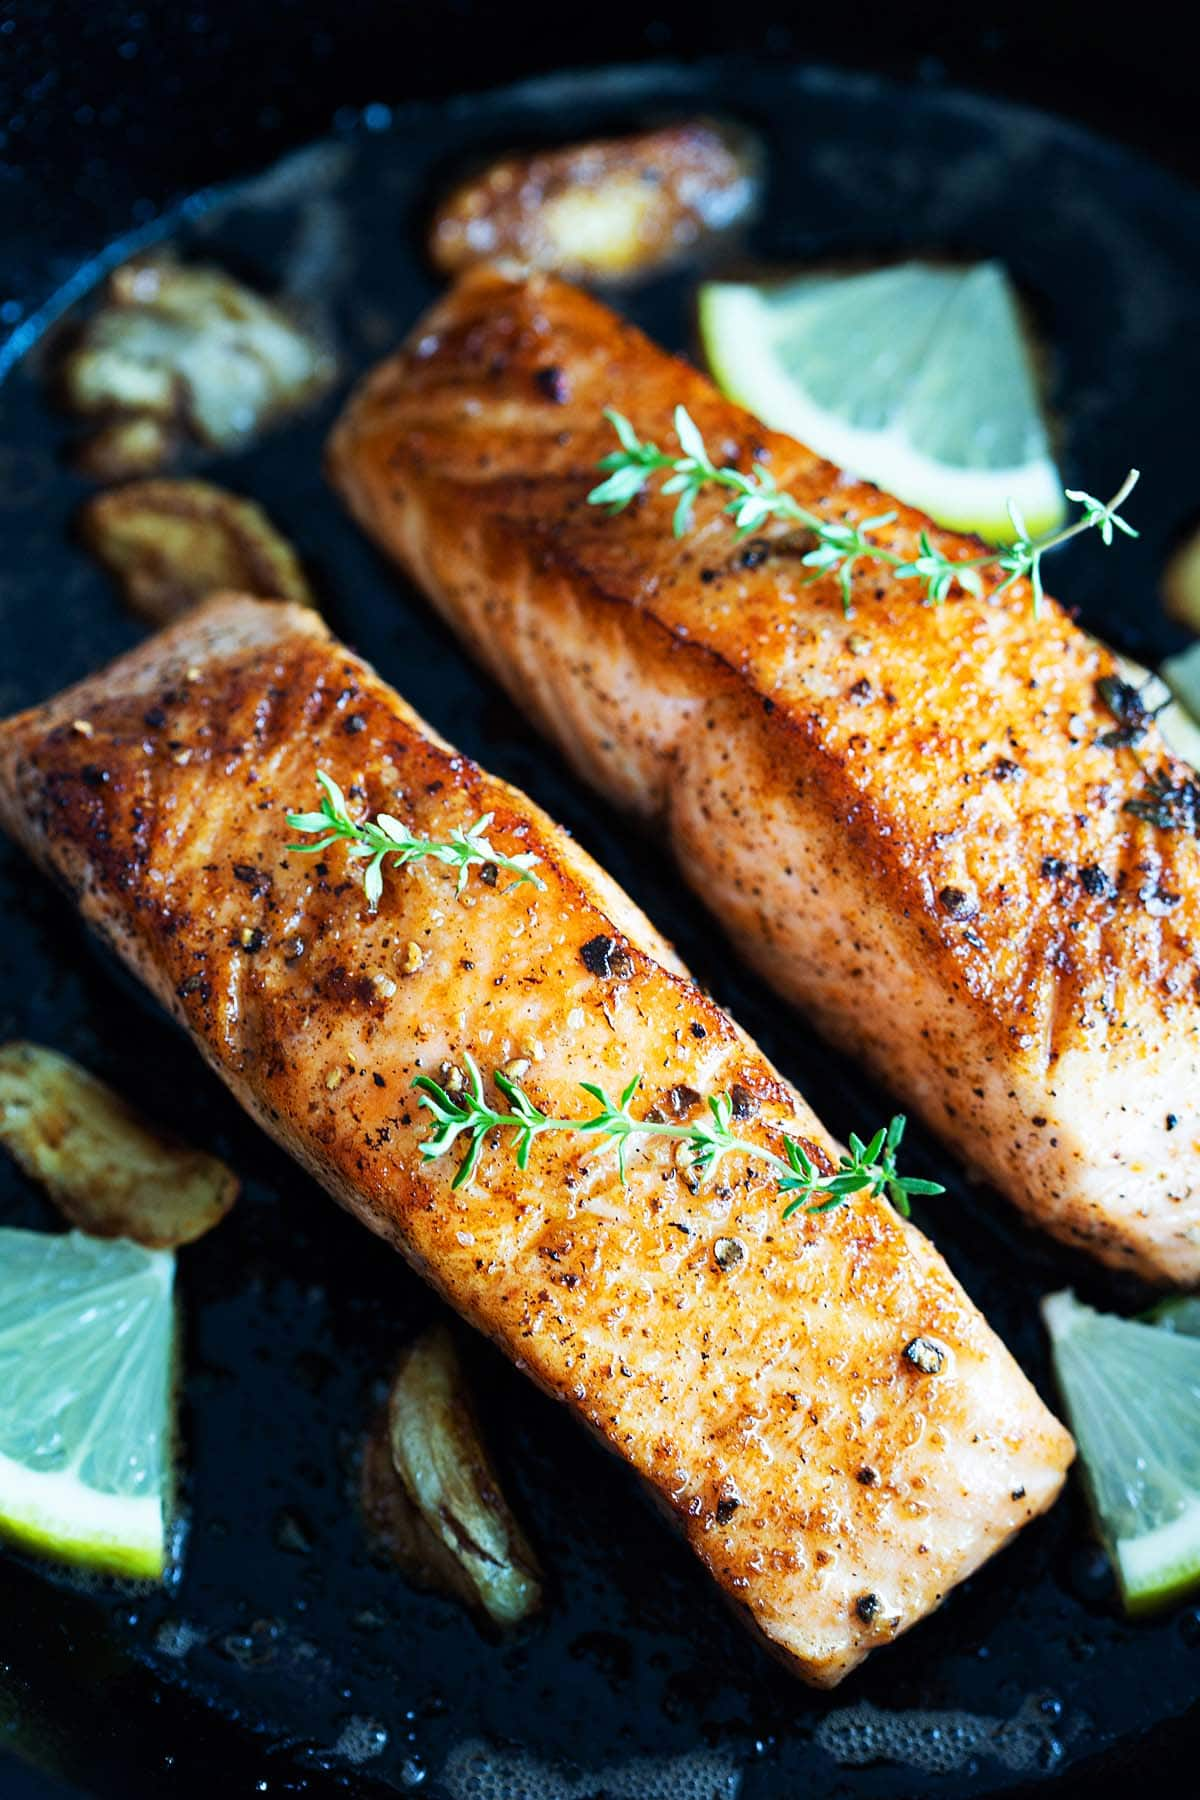 Pan seared salmon recipe with garlic, butter and thyme.